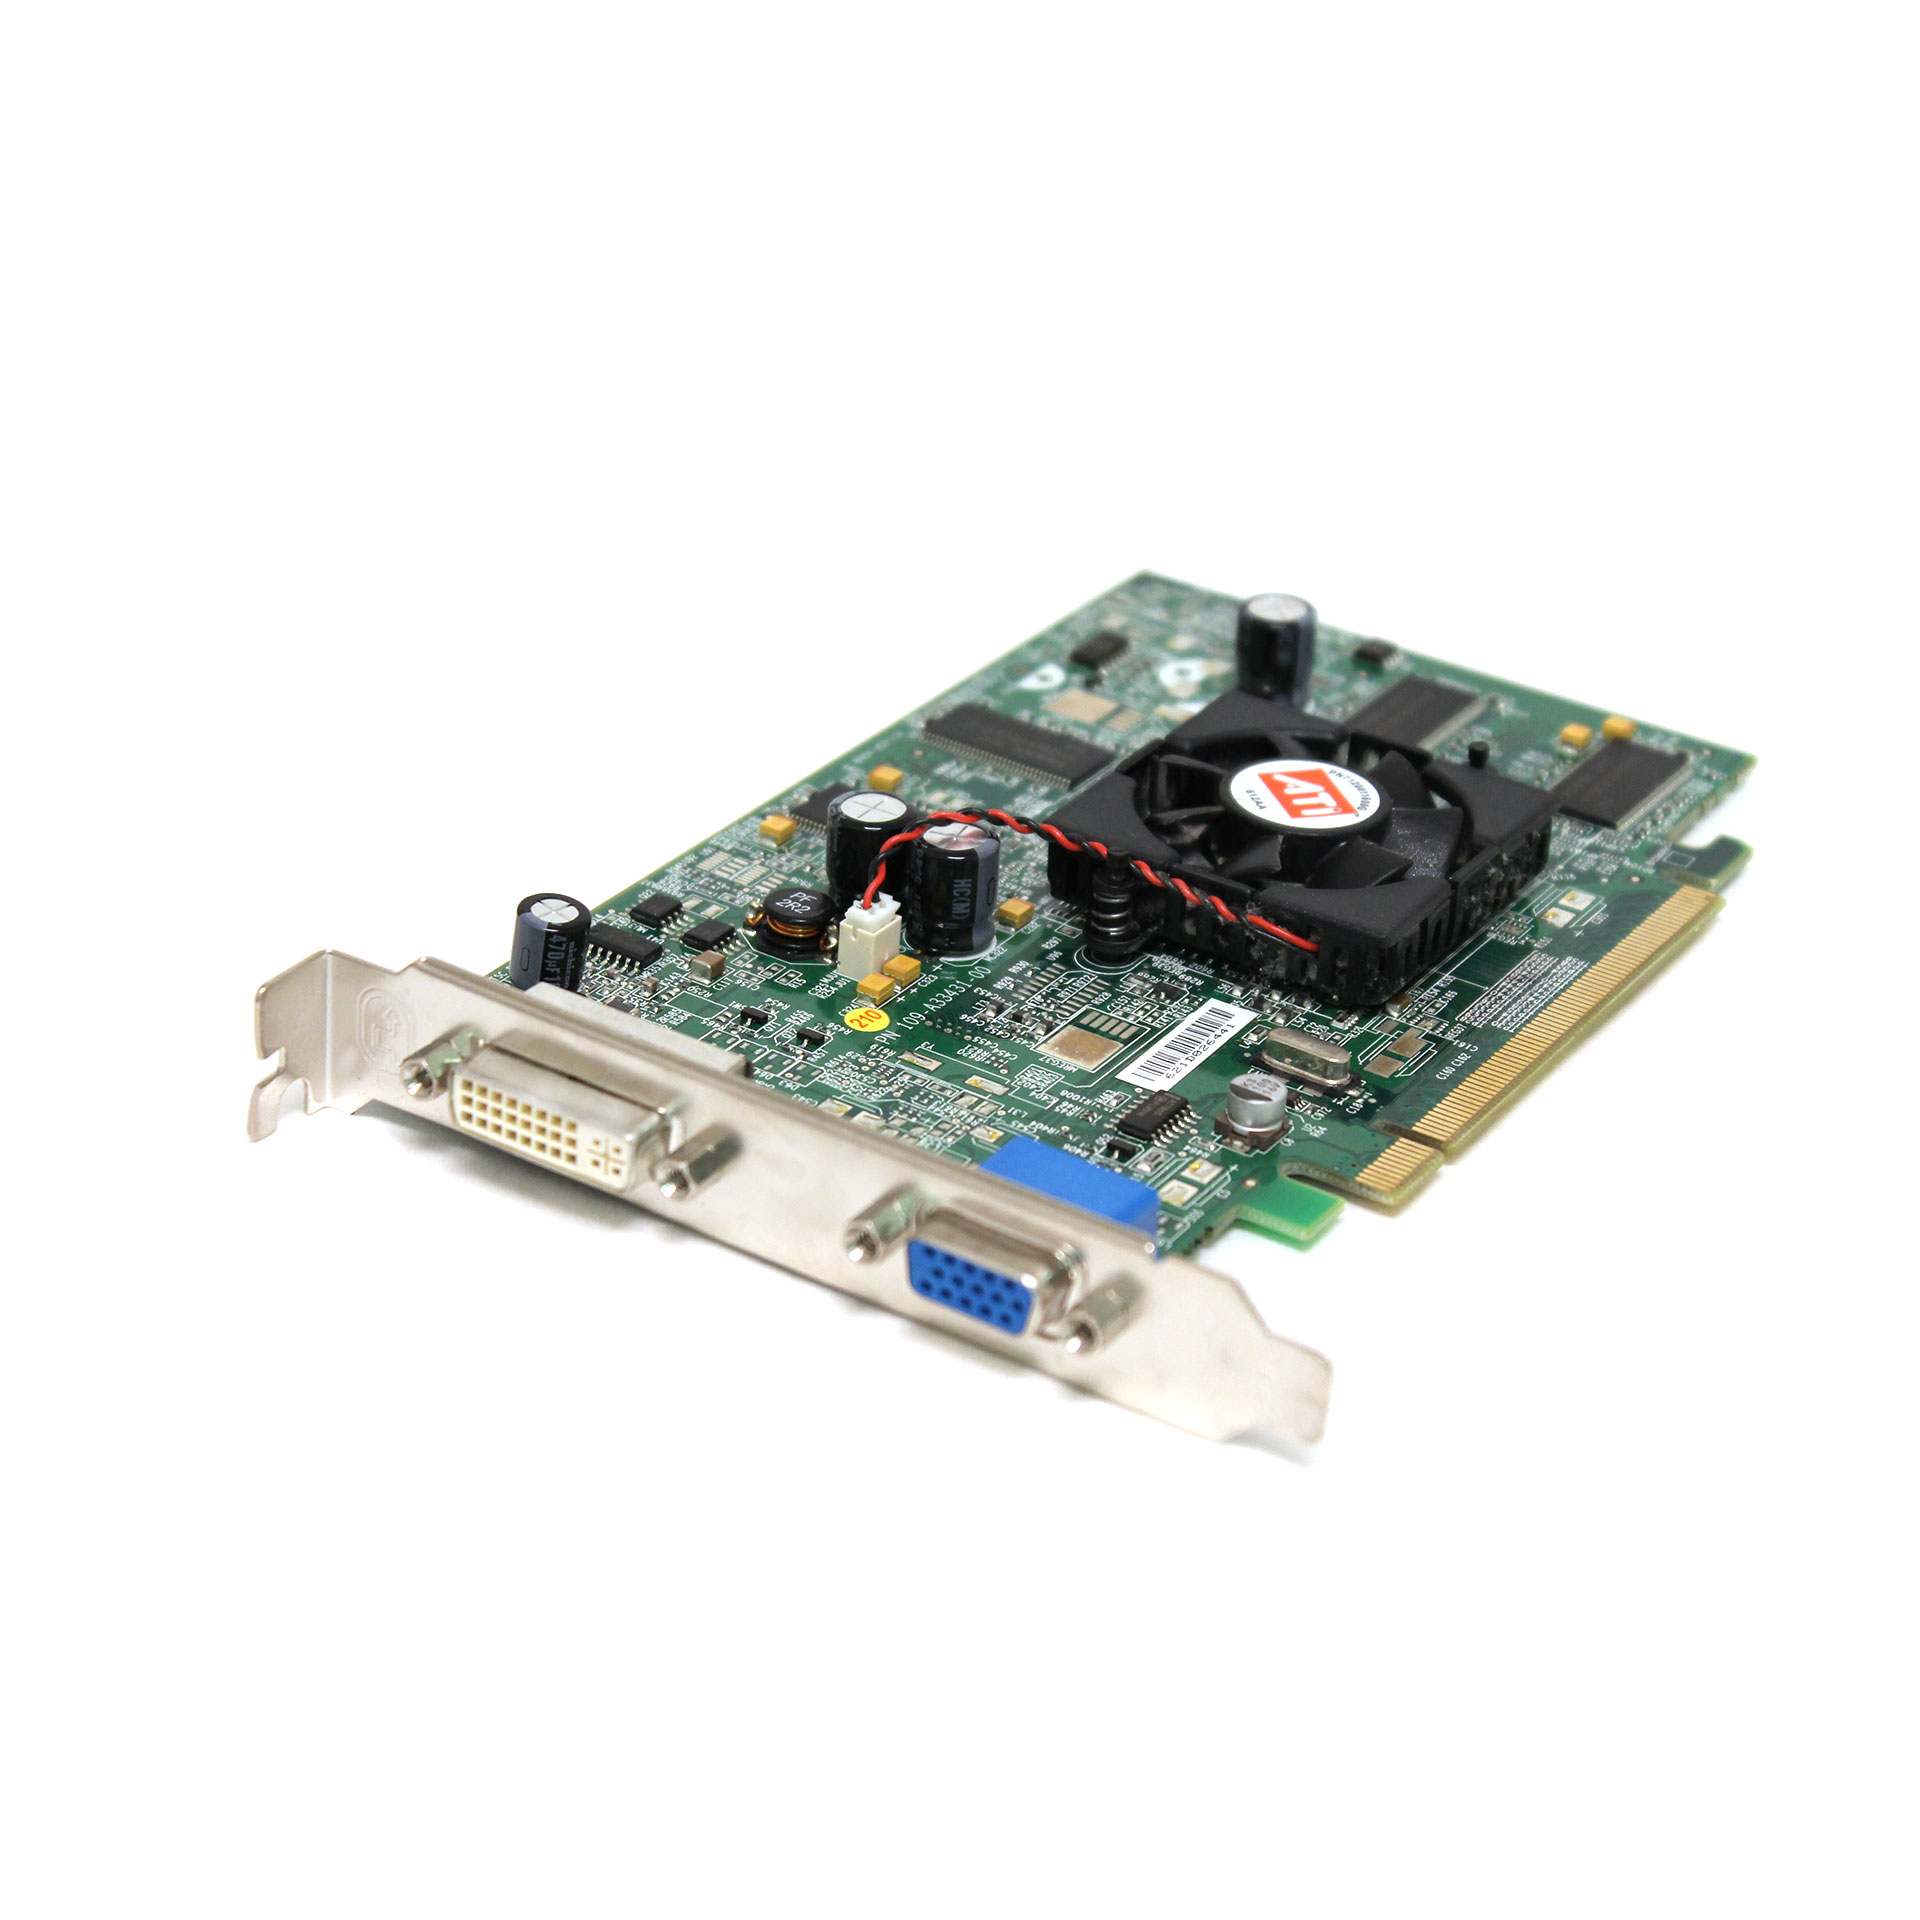 Dell 8964 ATi V3100 128MB PCI-e Video Card P9222 DVI-VGA Card